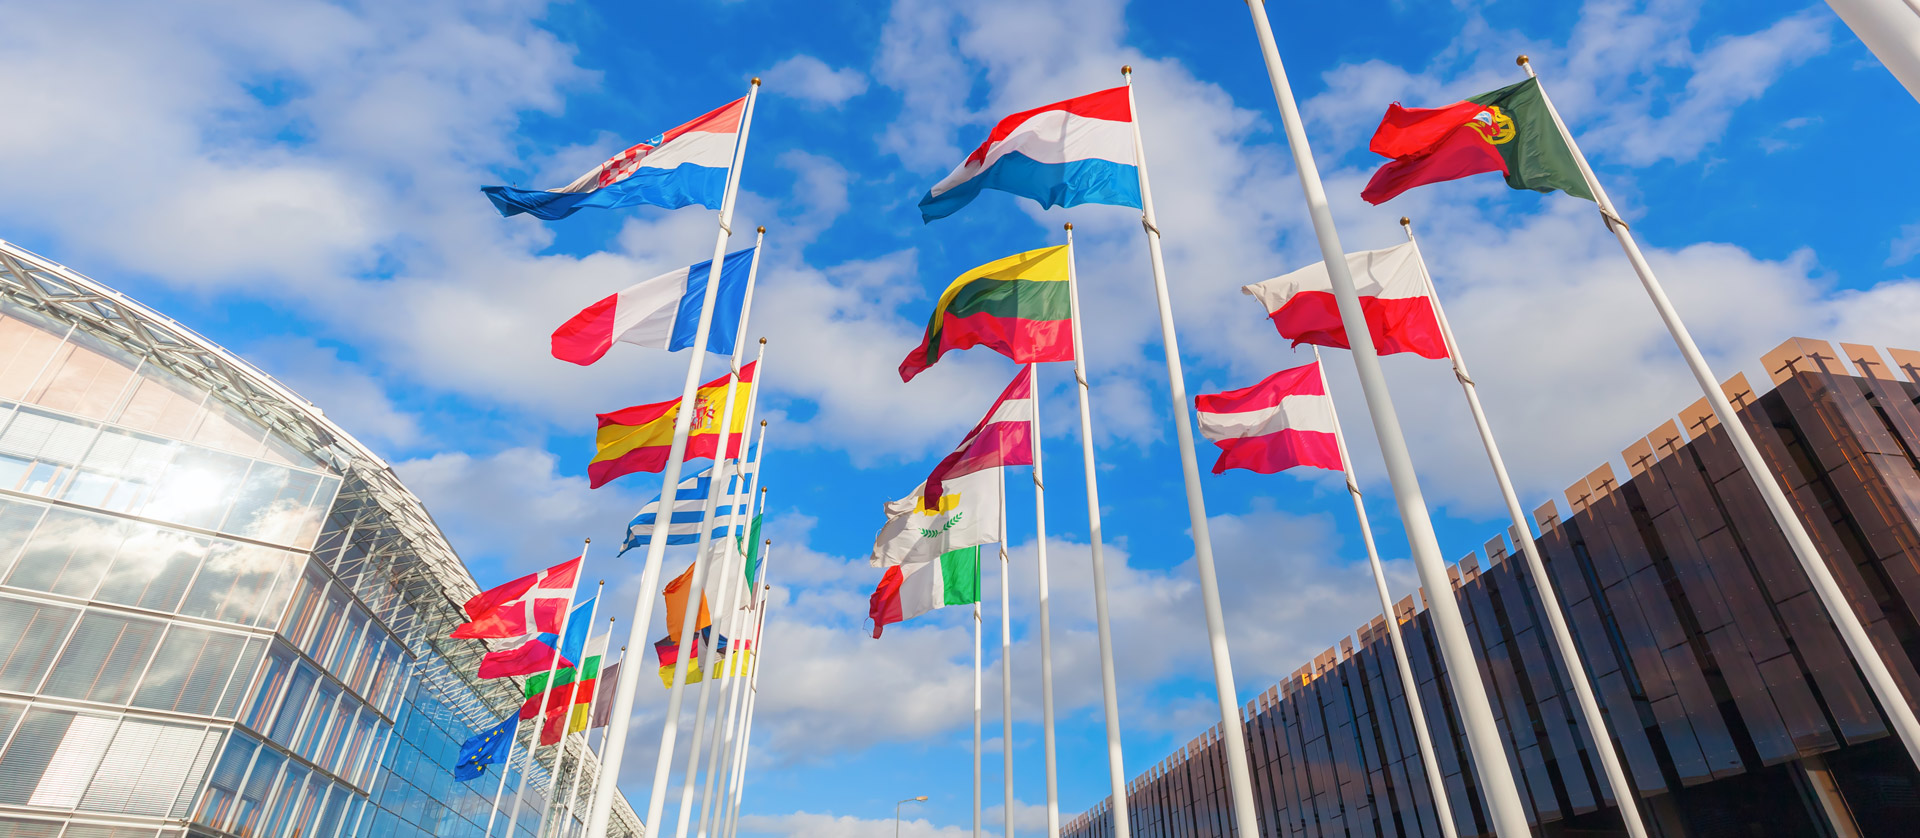 flags of different European countries waving in the wind